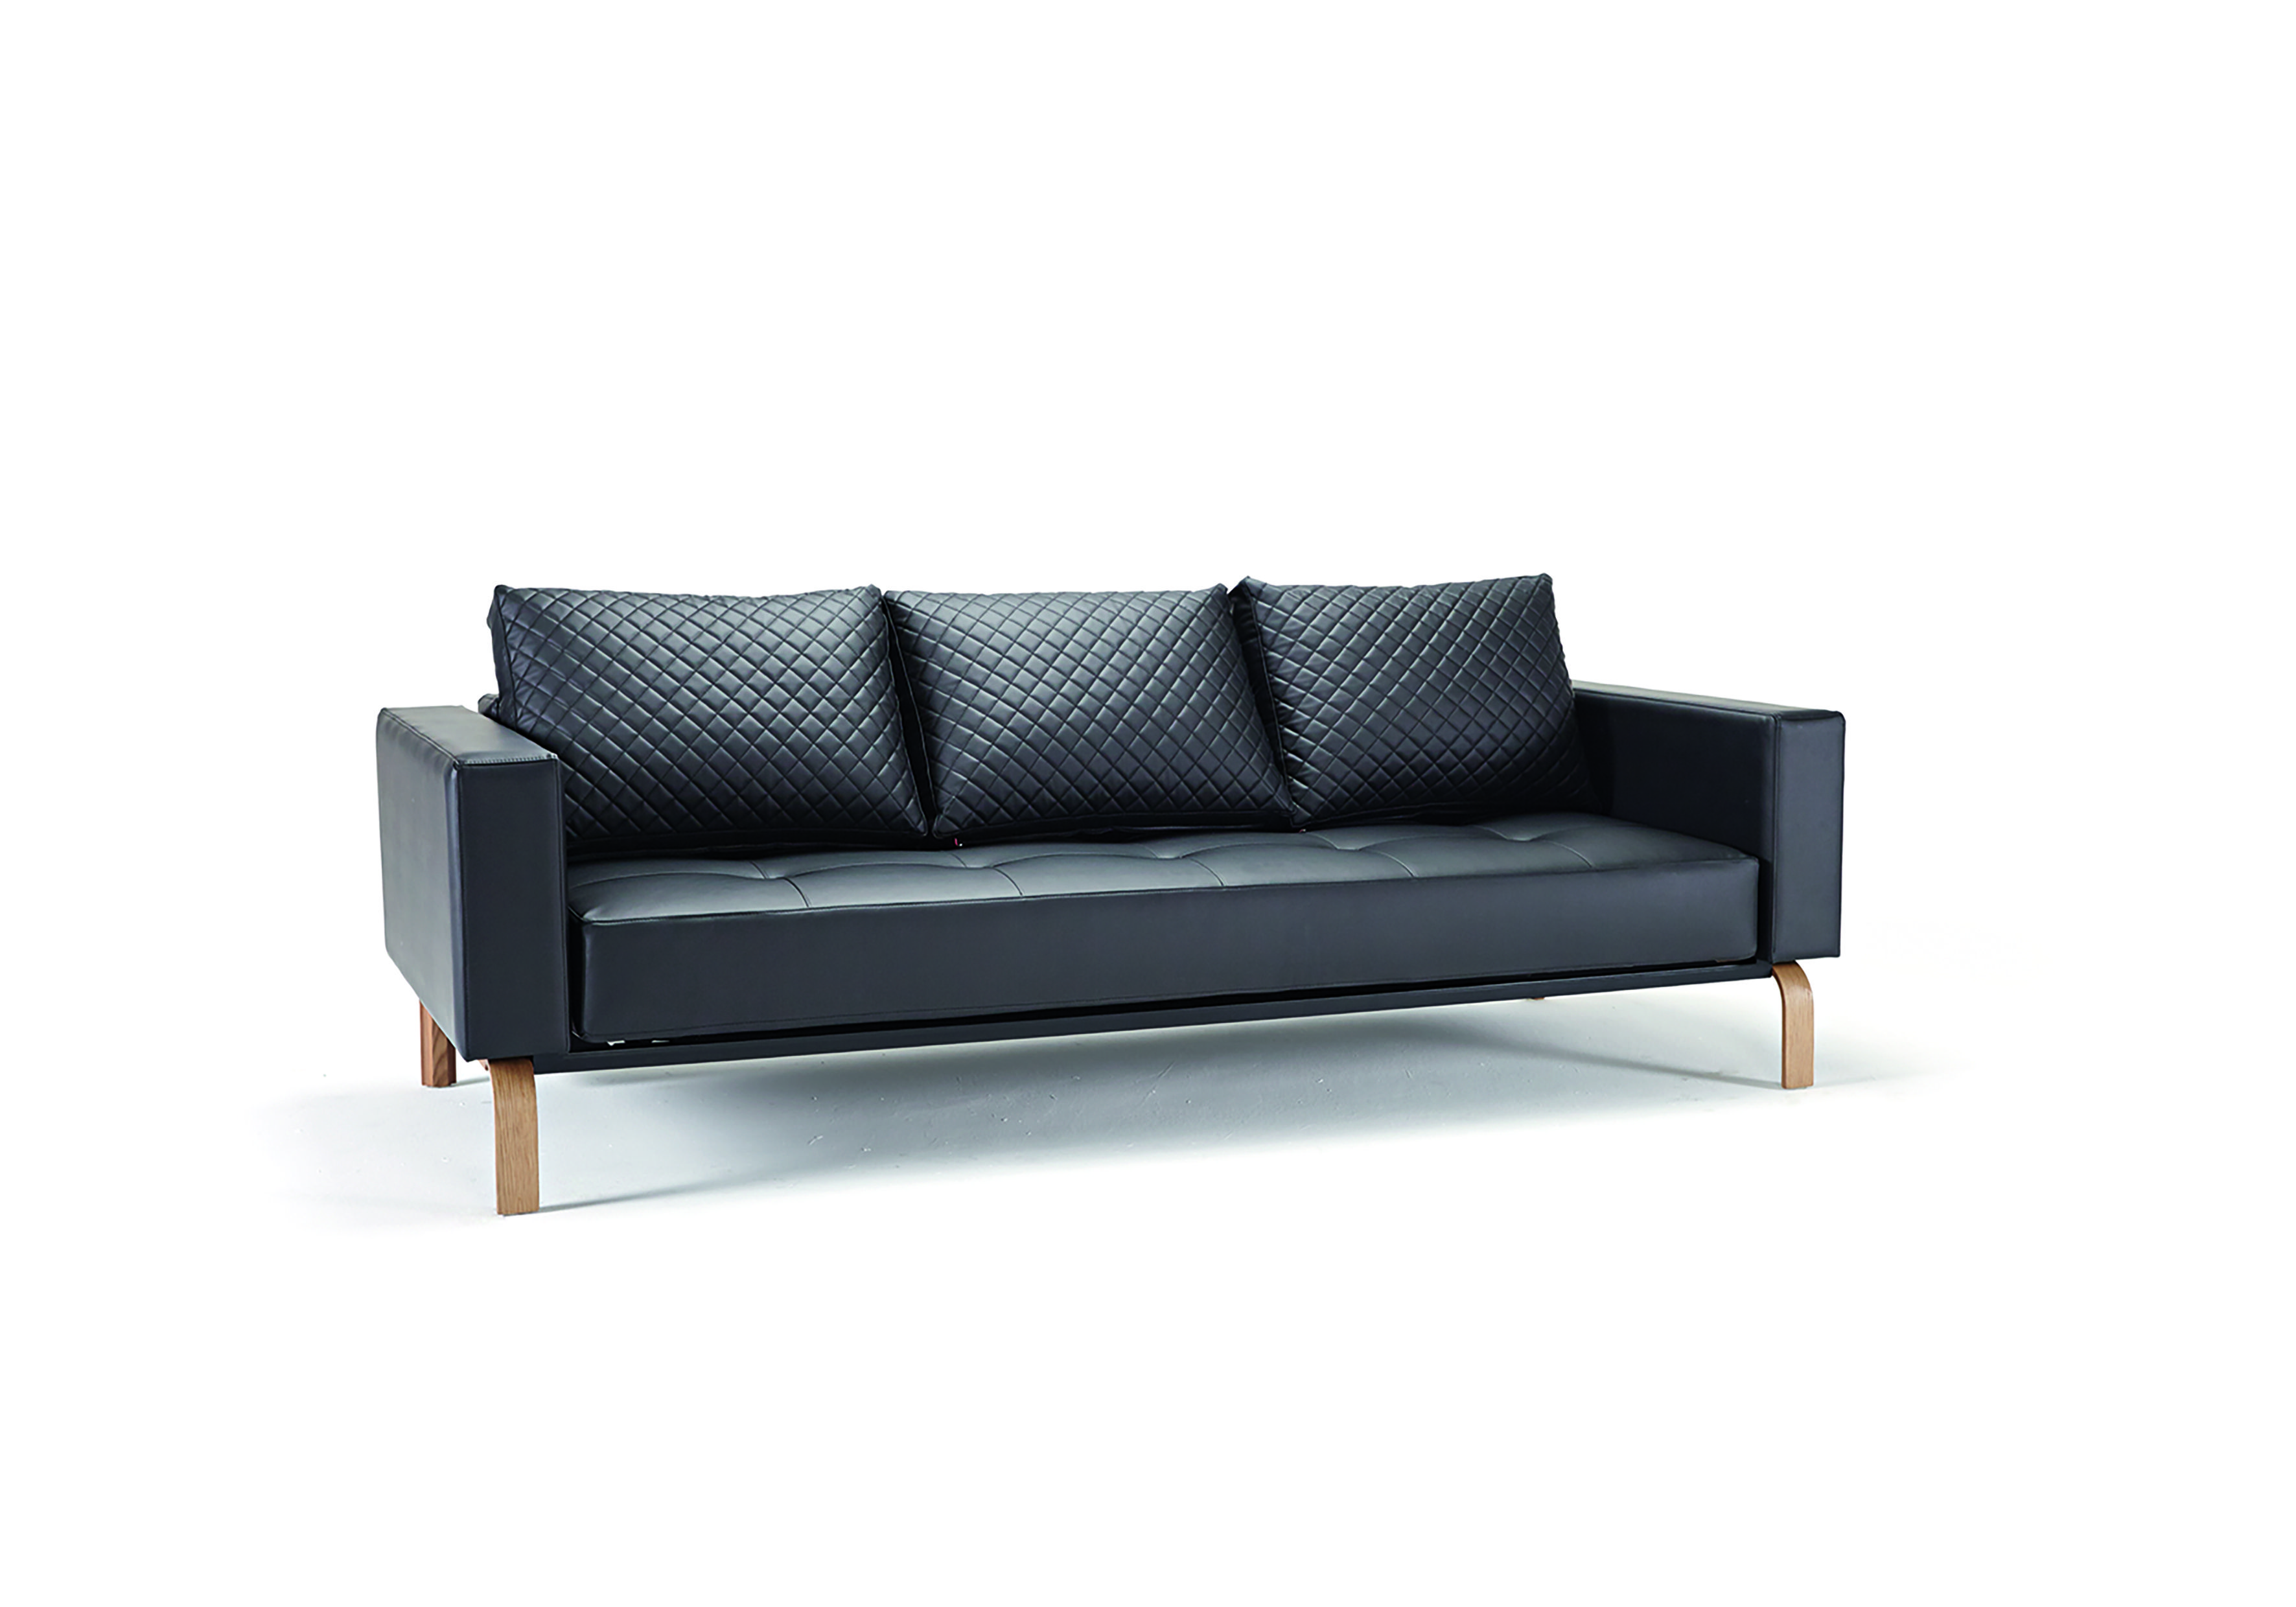 Cassius Quilt Sofa Bed Full Size Black Leather Textile By Innovation Sofa Bed Design Furniture Sofa